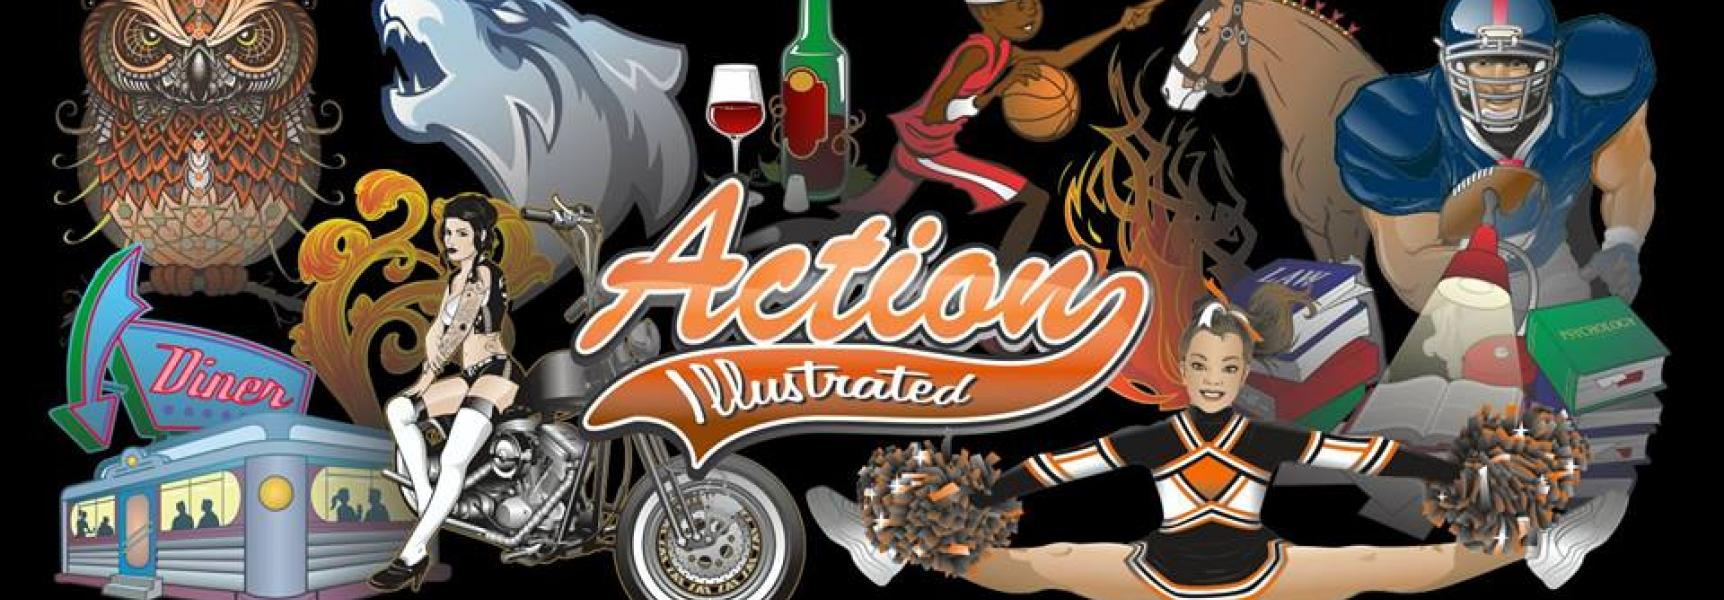 action art teaser logo